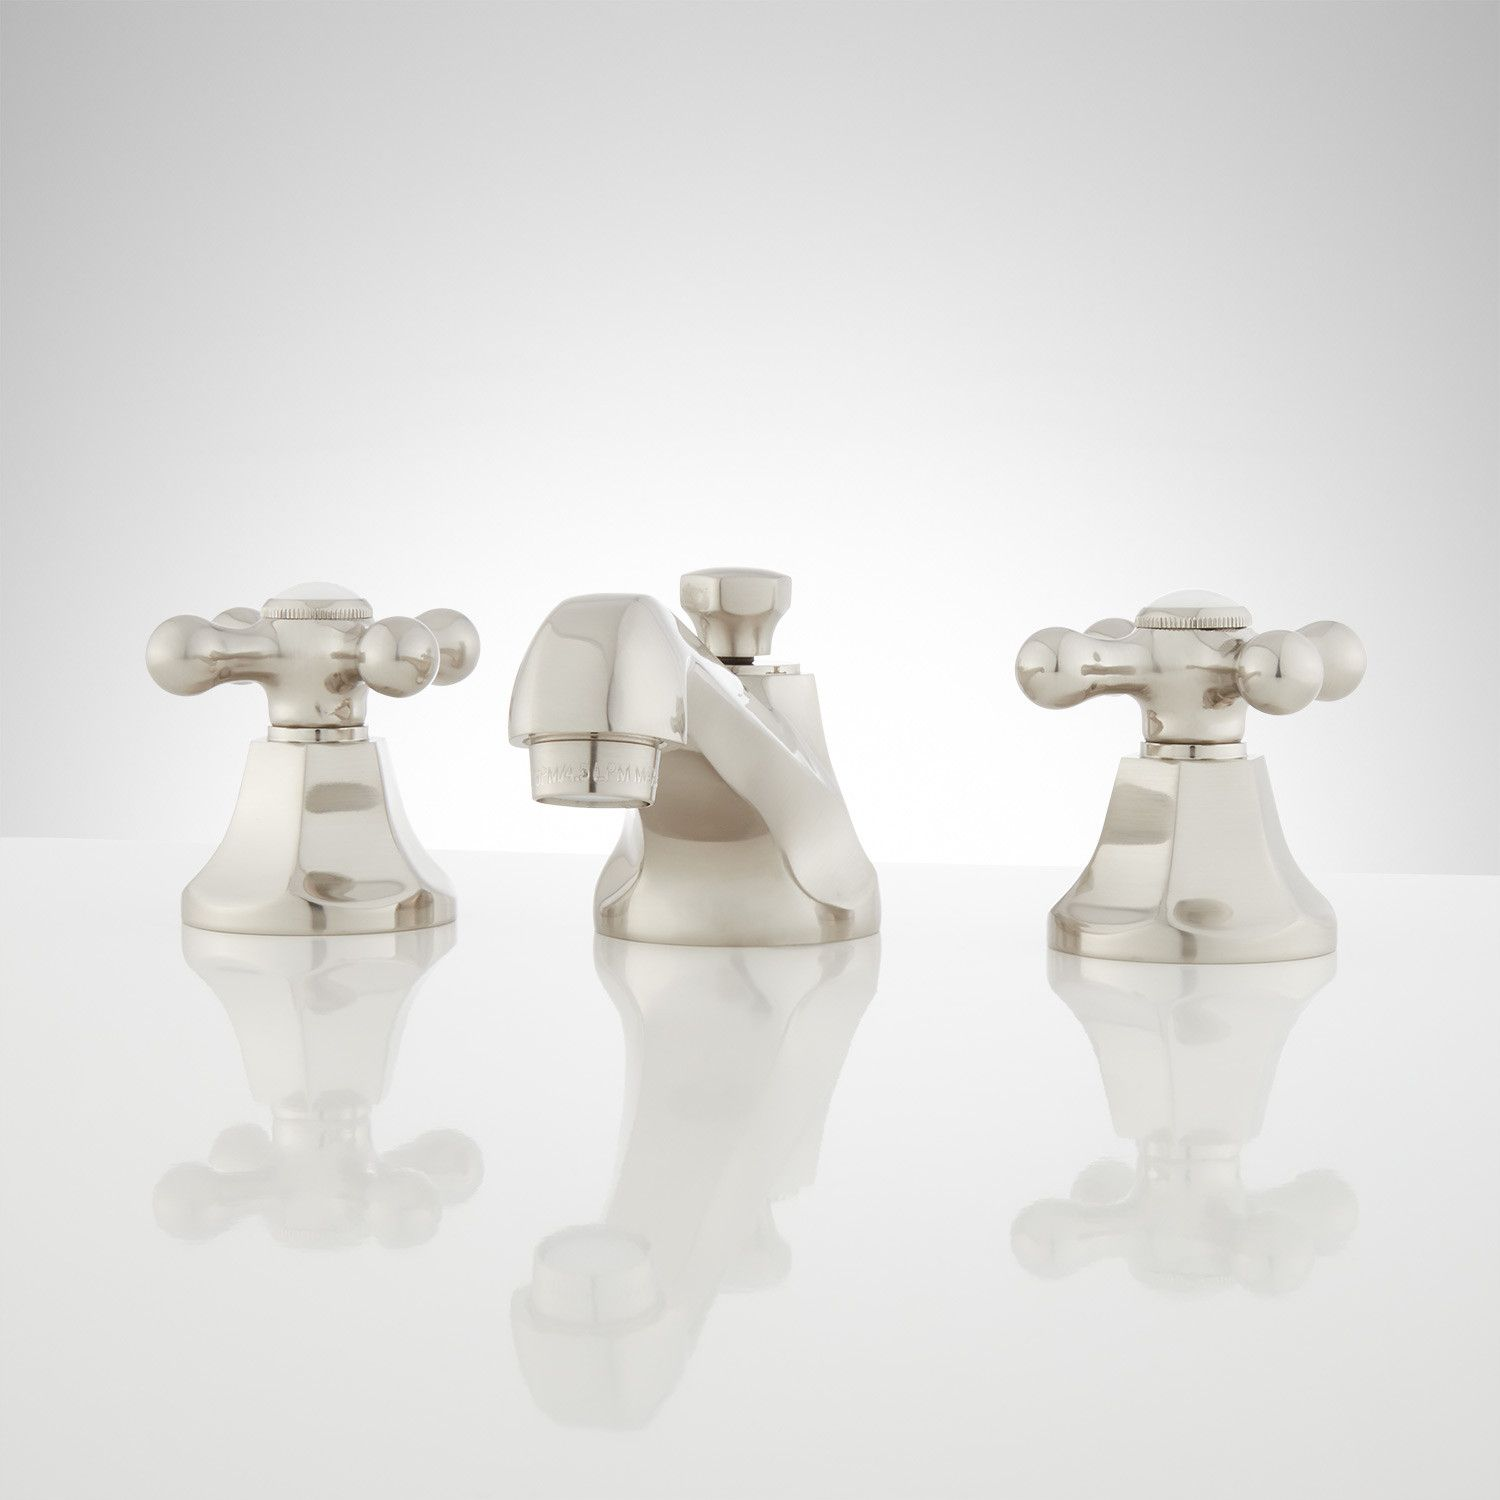 New York Widespread Bathroom Faucet In Cross Handles In Polished